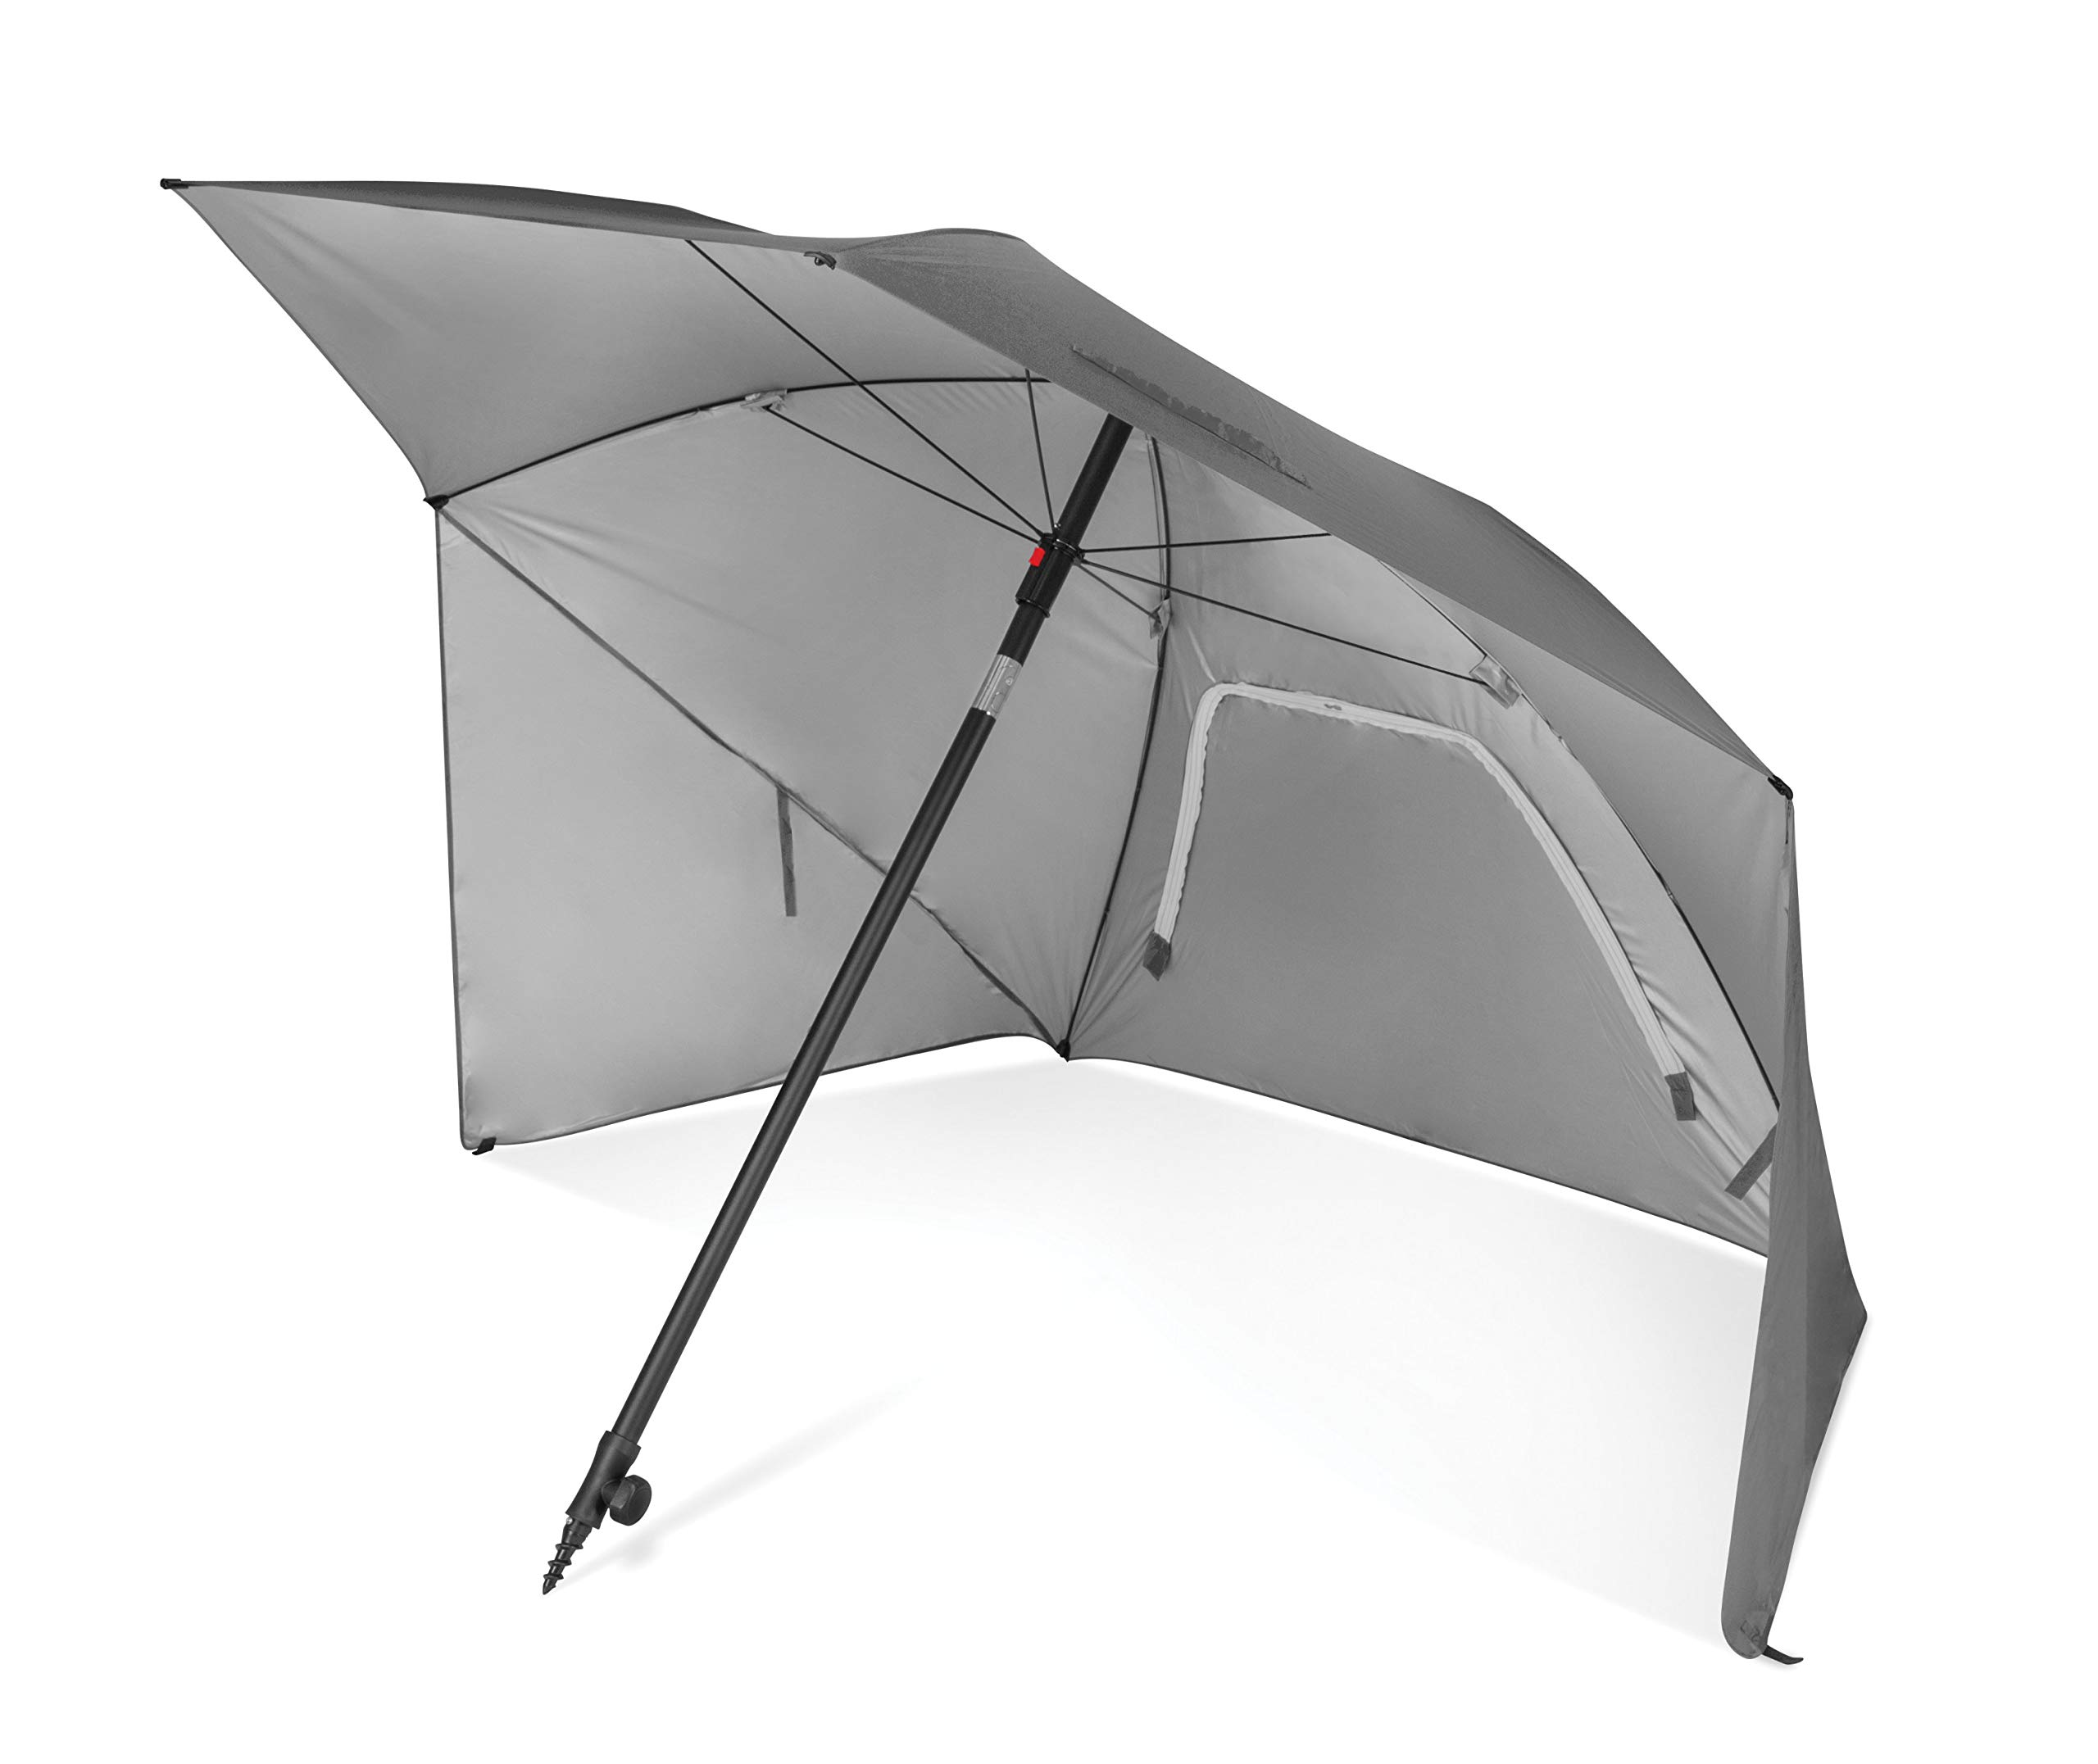 Sport-Brella Ultra SPF 50+ Angled Shade Canopy Umbrella for Optimum Sight Lines at Sports Events (8-Foot), Light Grey by Sport-Brella